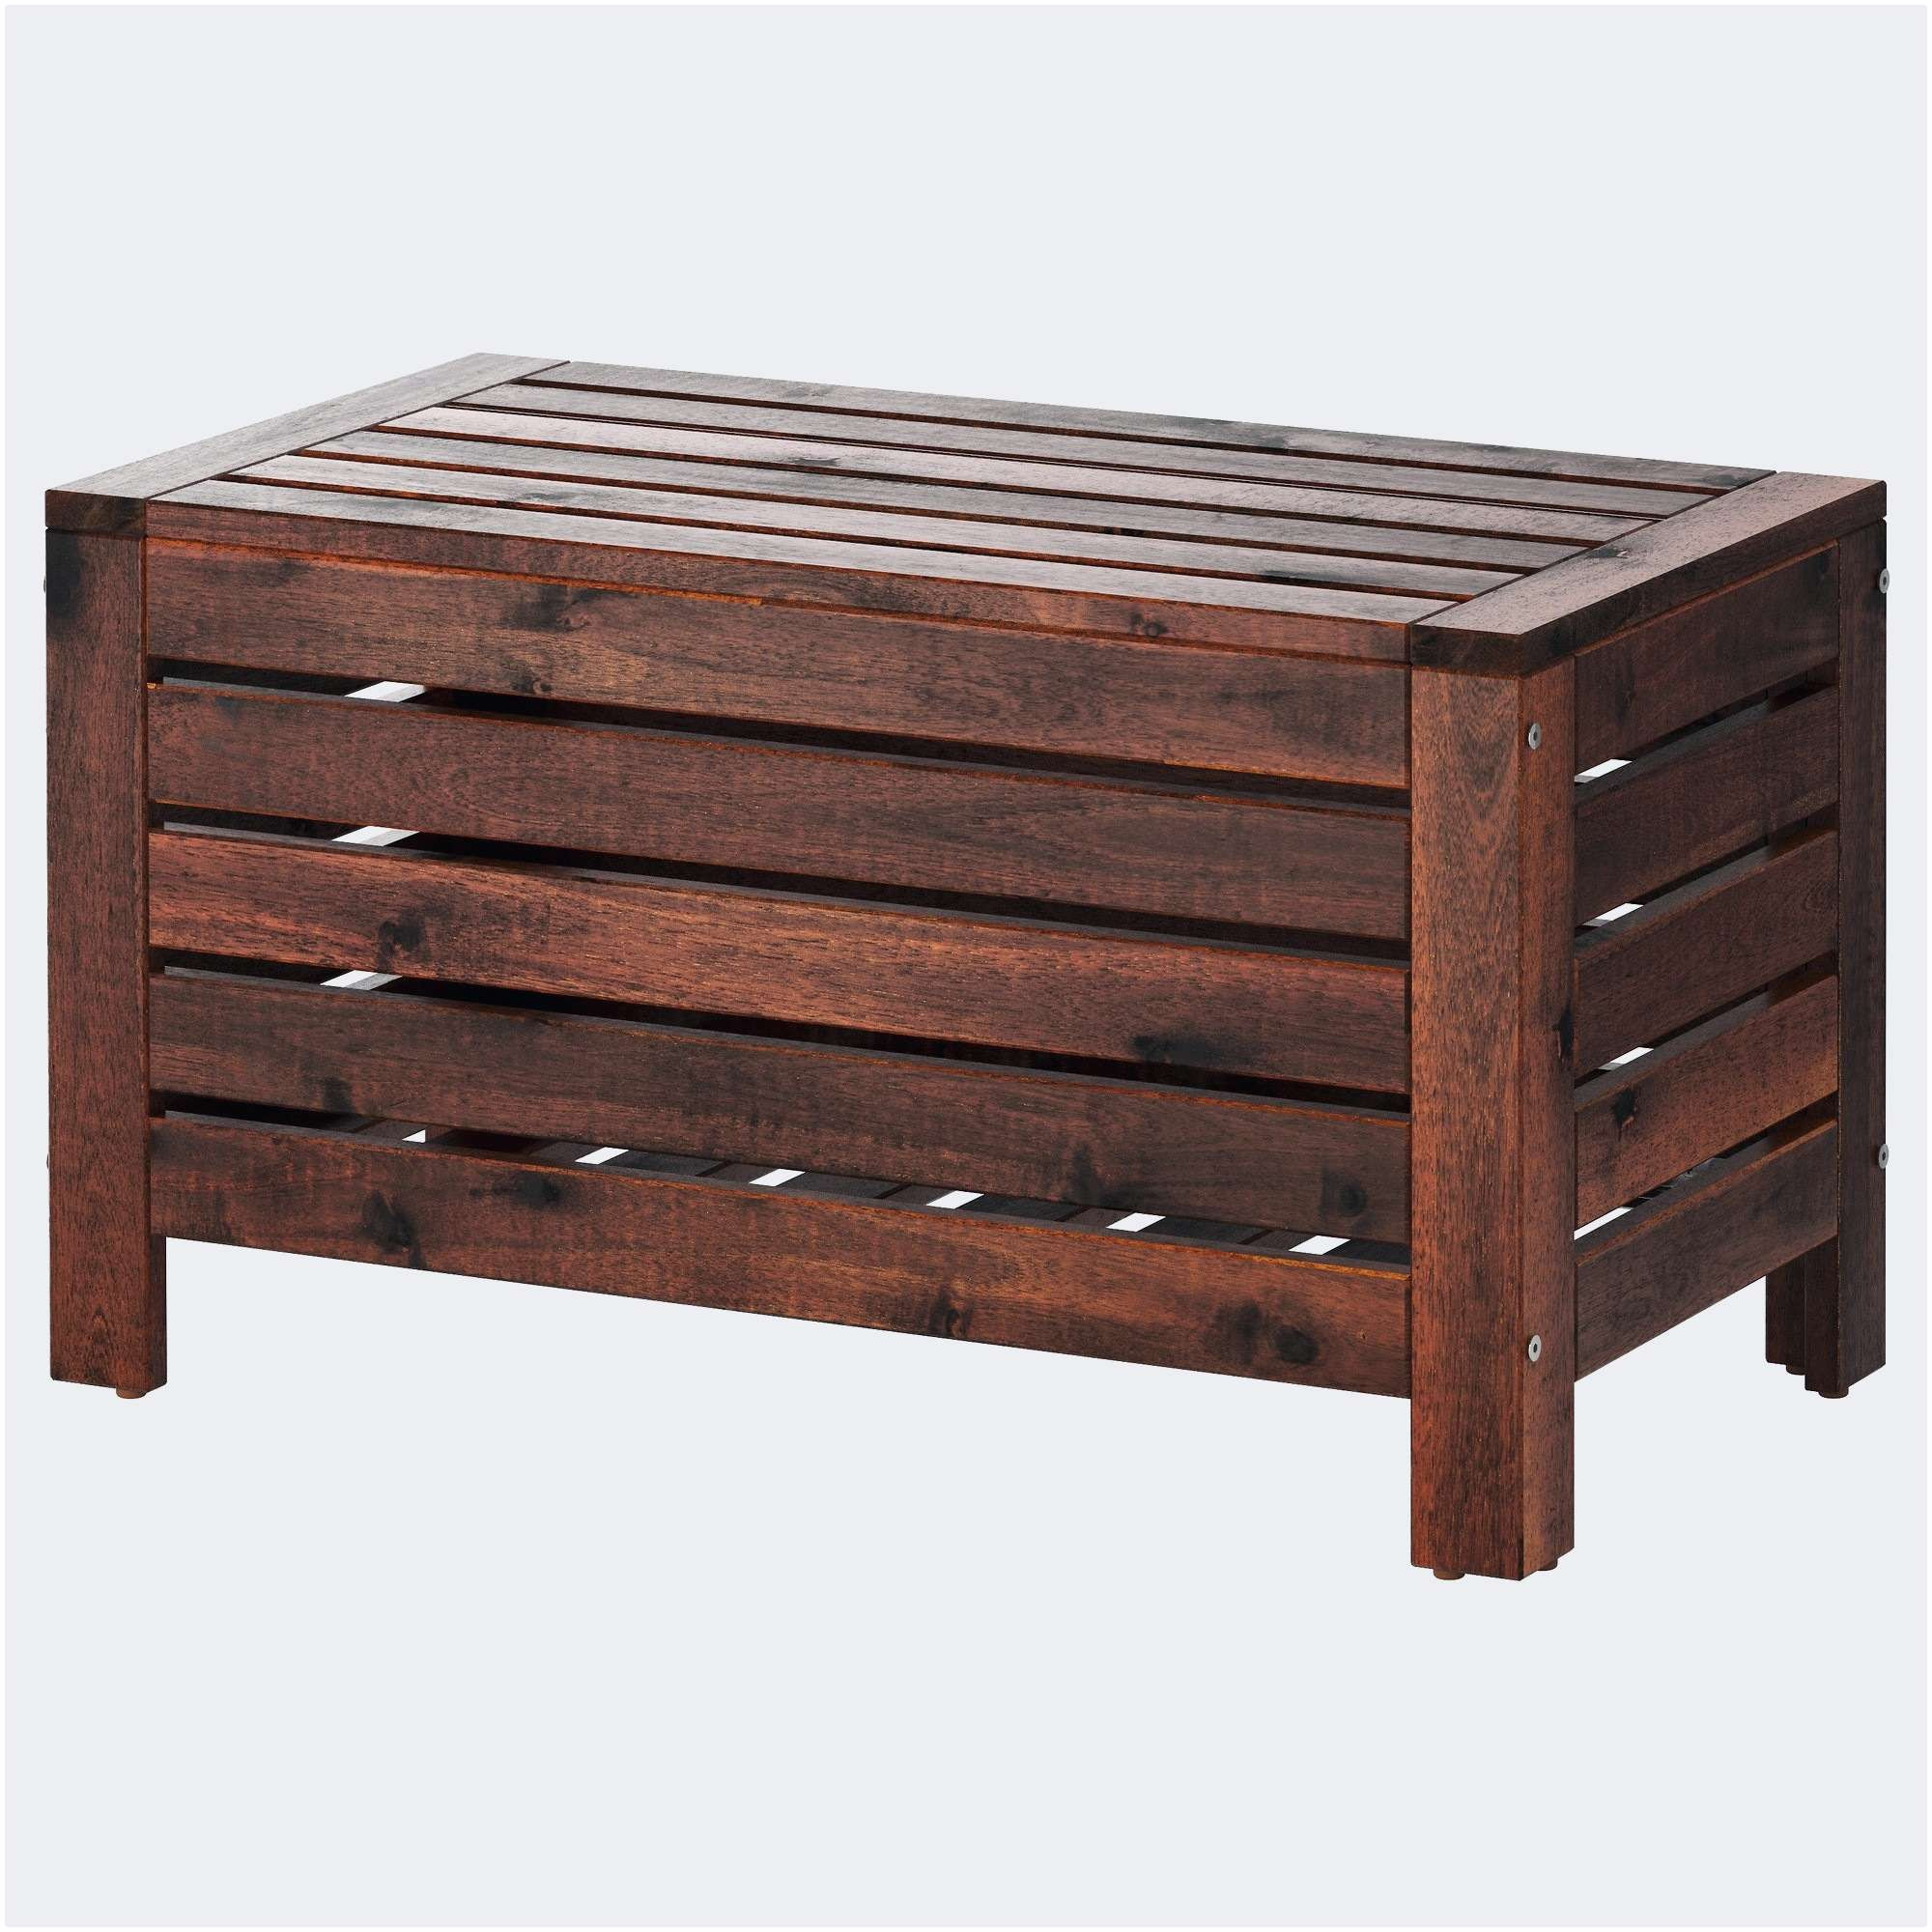 Table basse jardin castorama